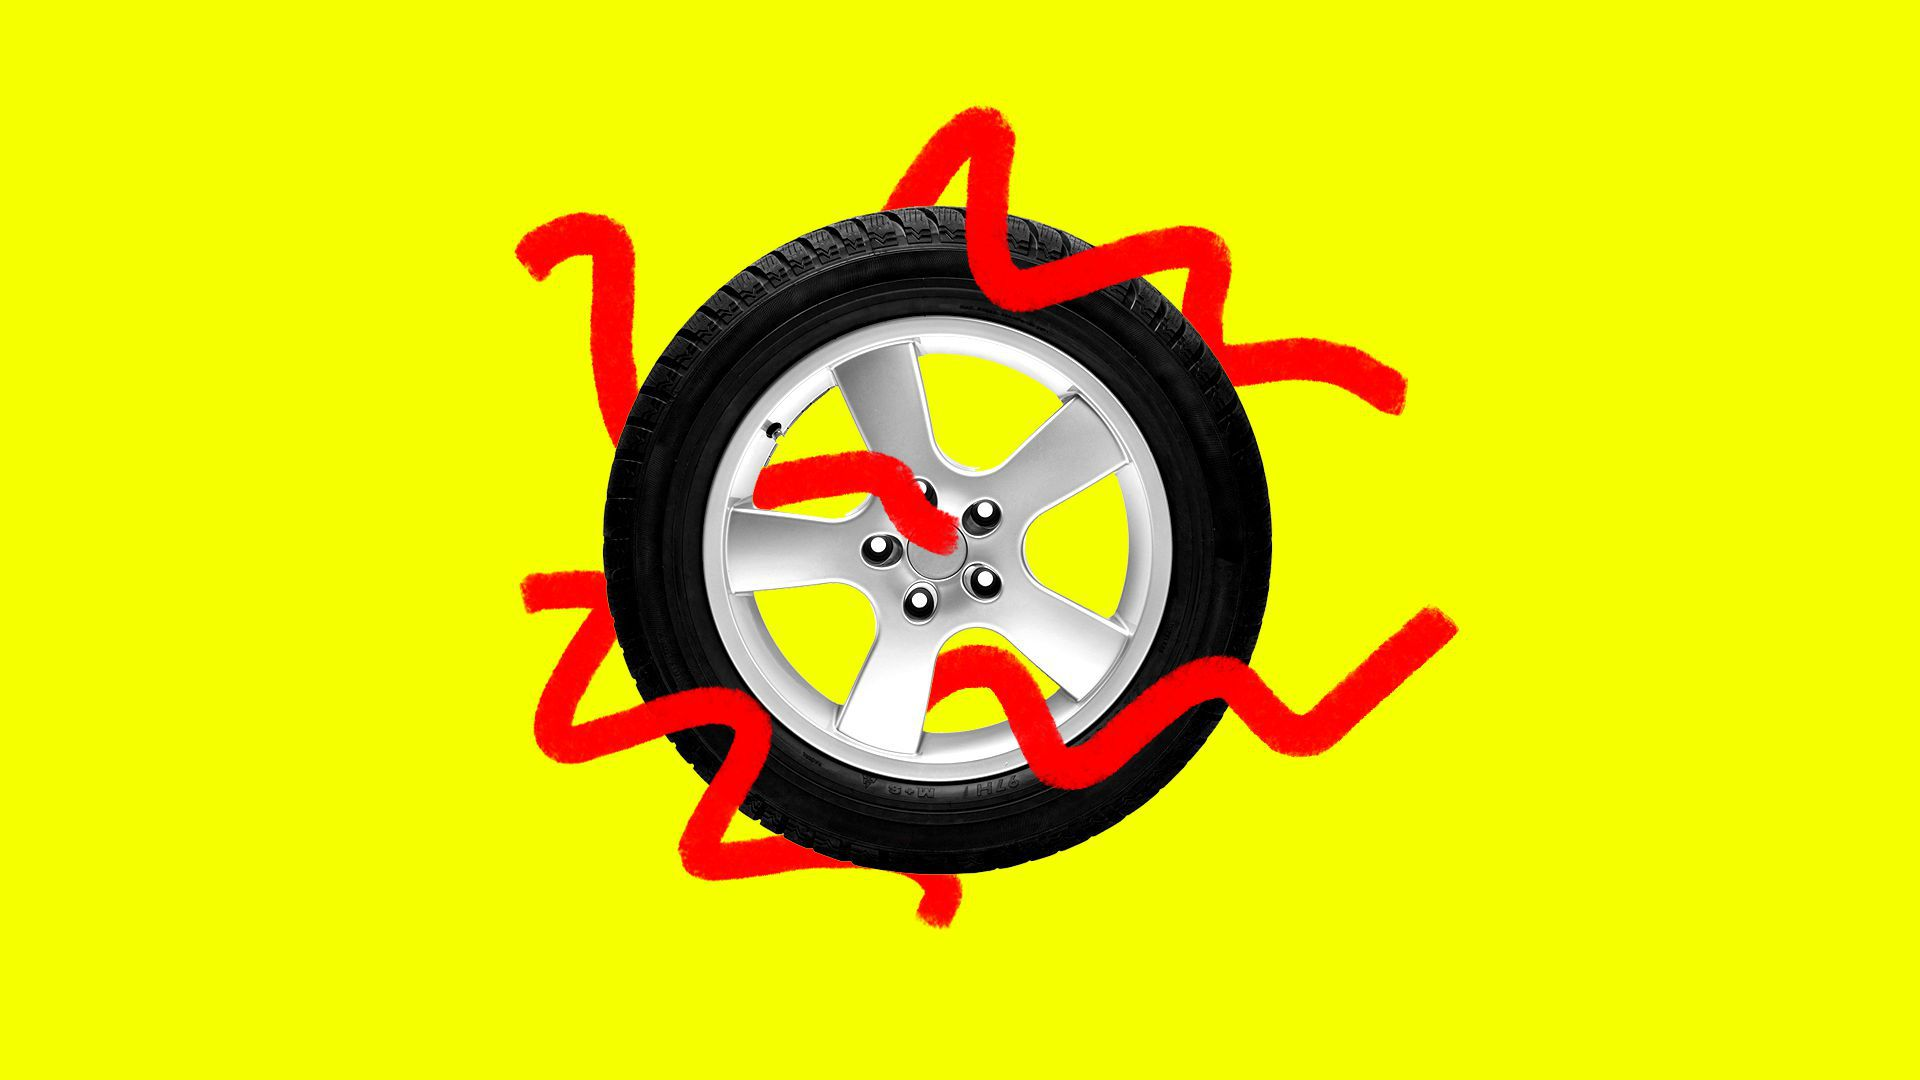 Illustration of a tire